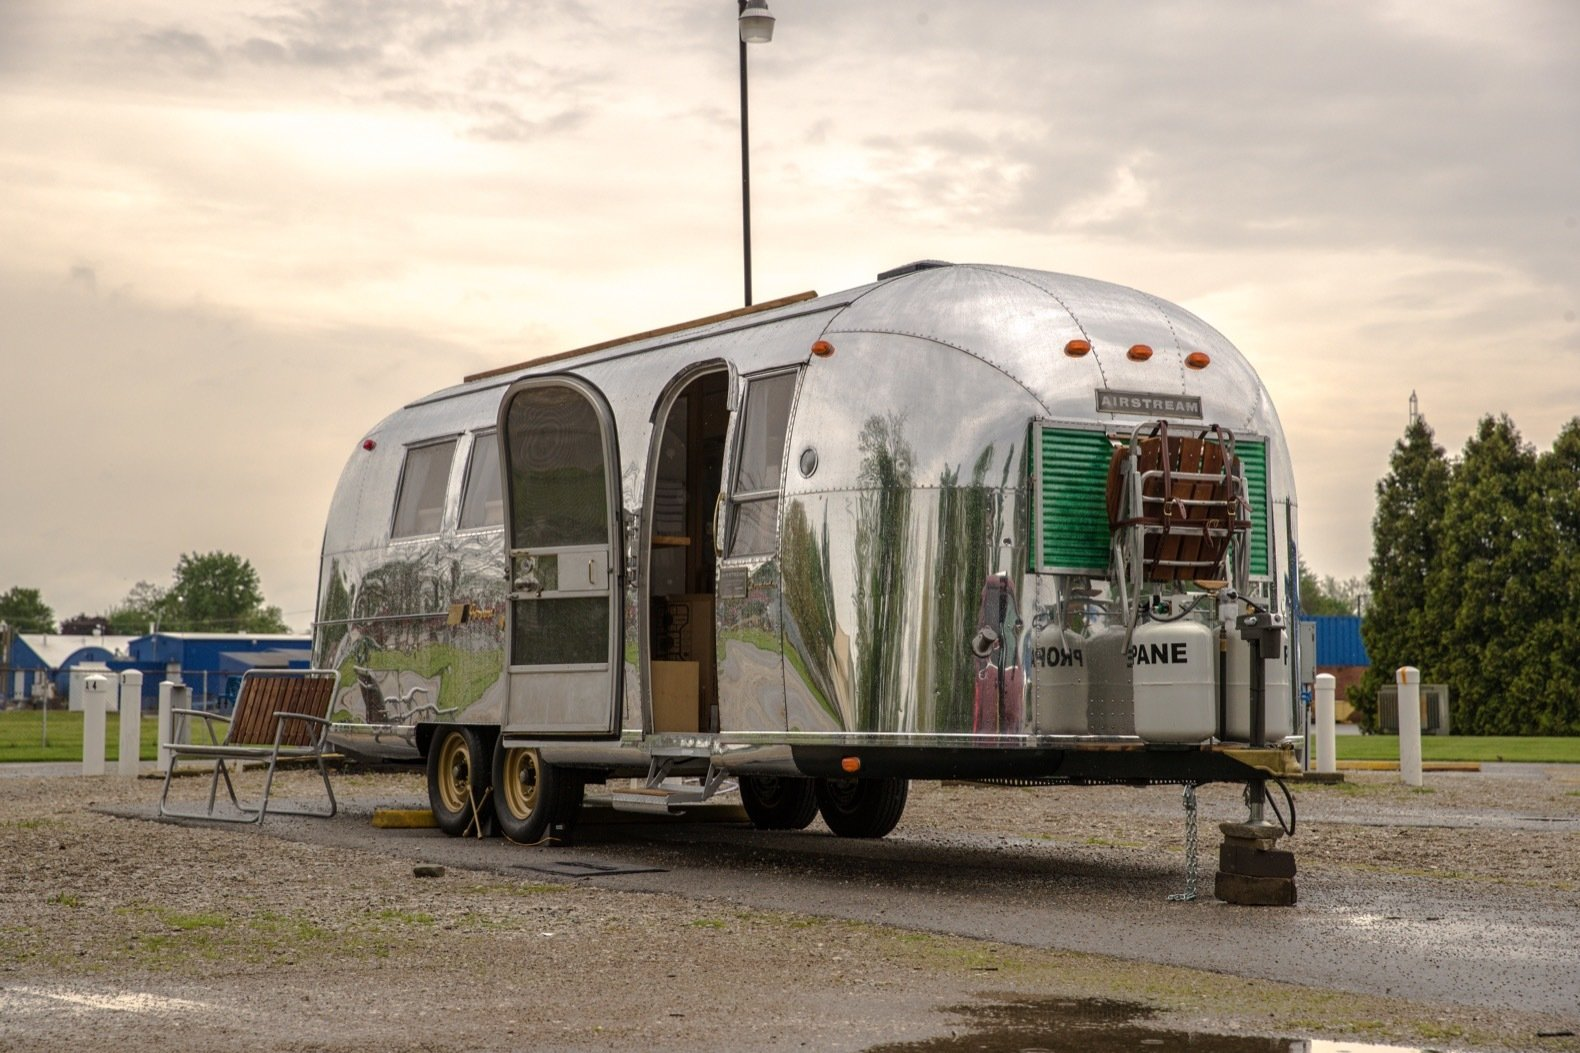 Best Photos from An Old Airstream Is Transformed Into a